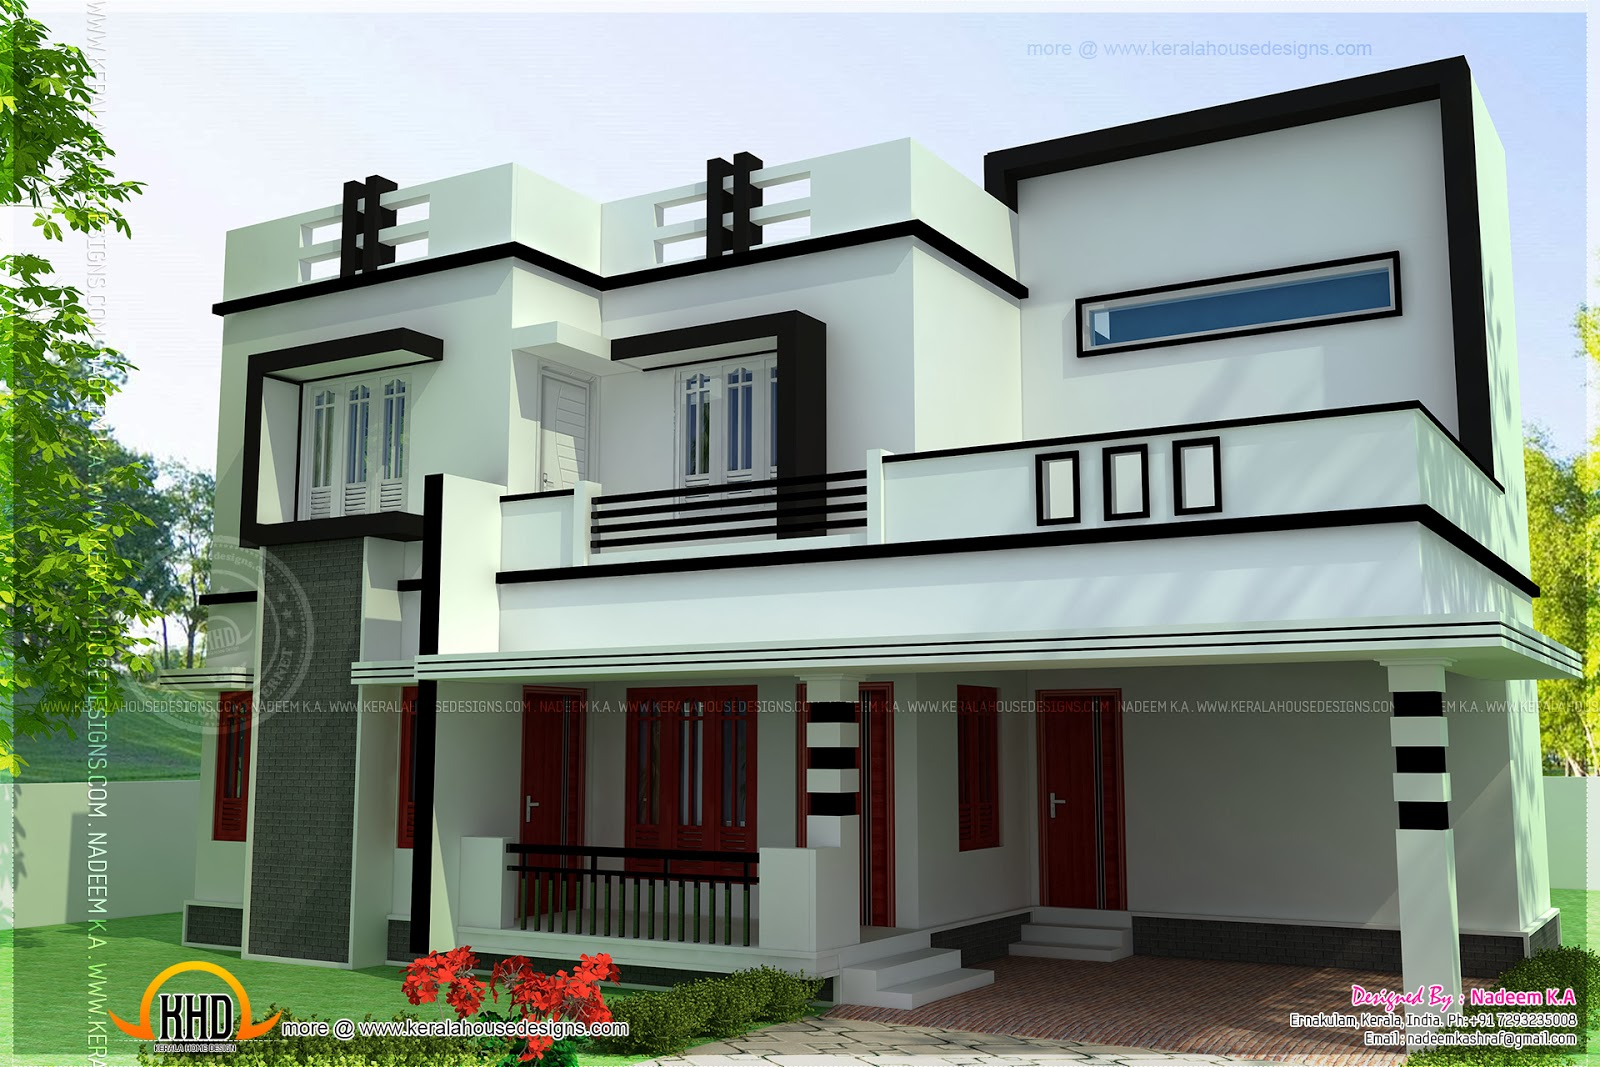 Flat house modern Flat roof 4 bedroom